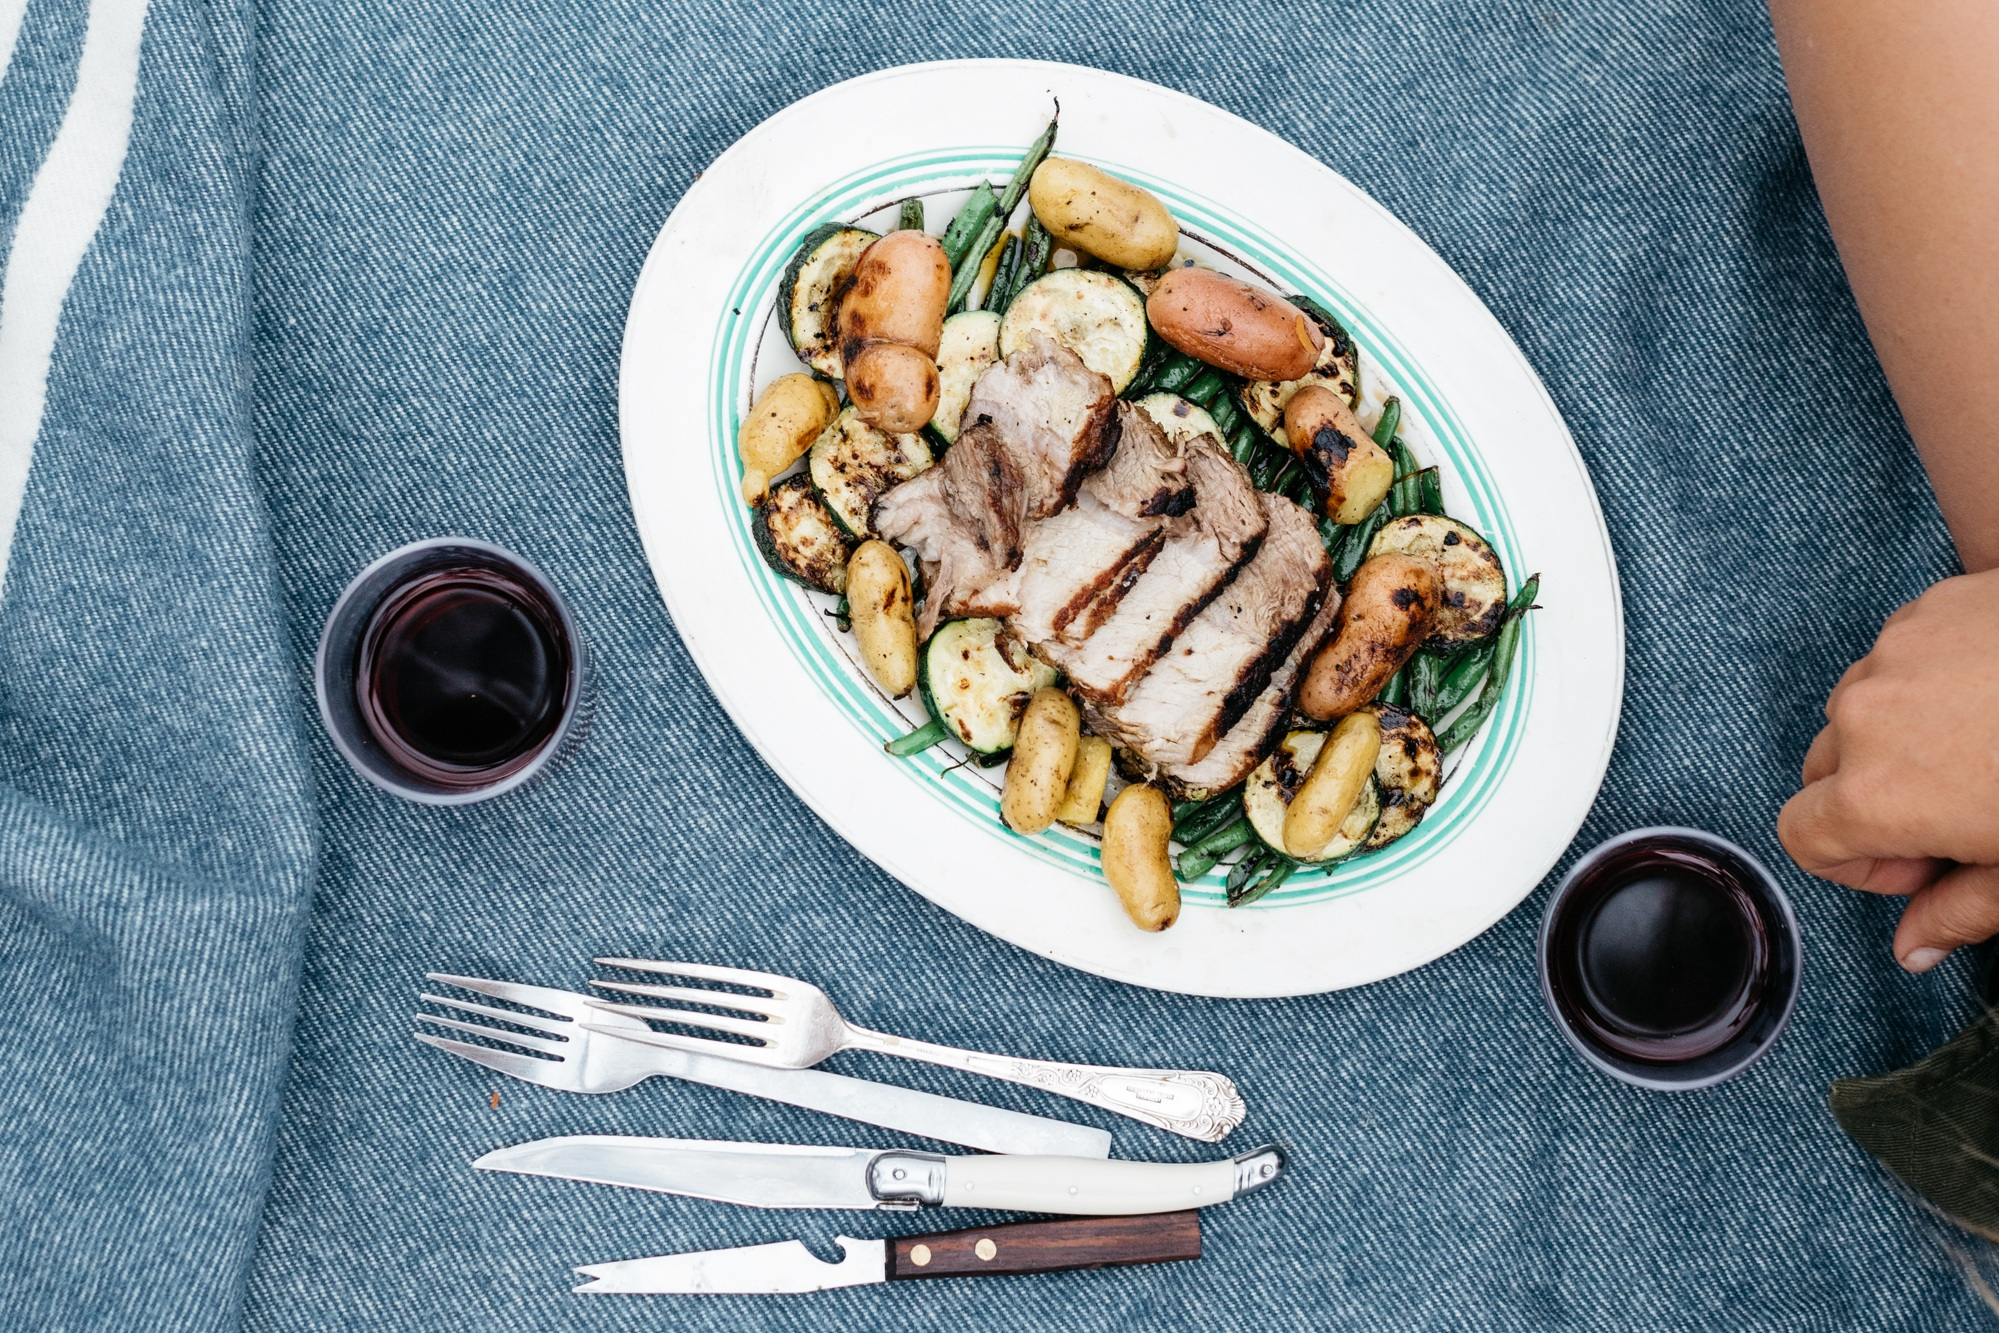 Cider-Poached Pork with Green Beans